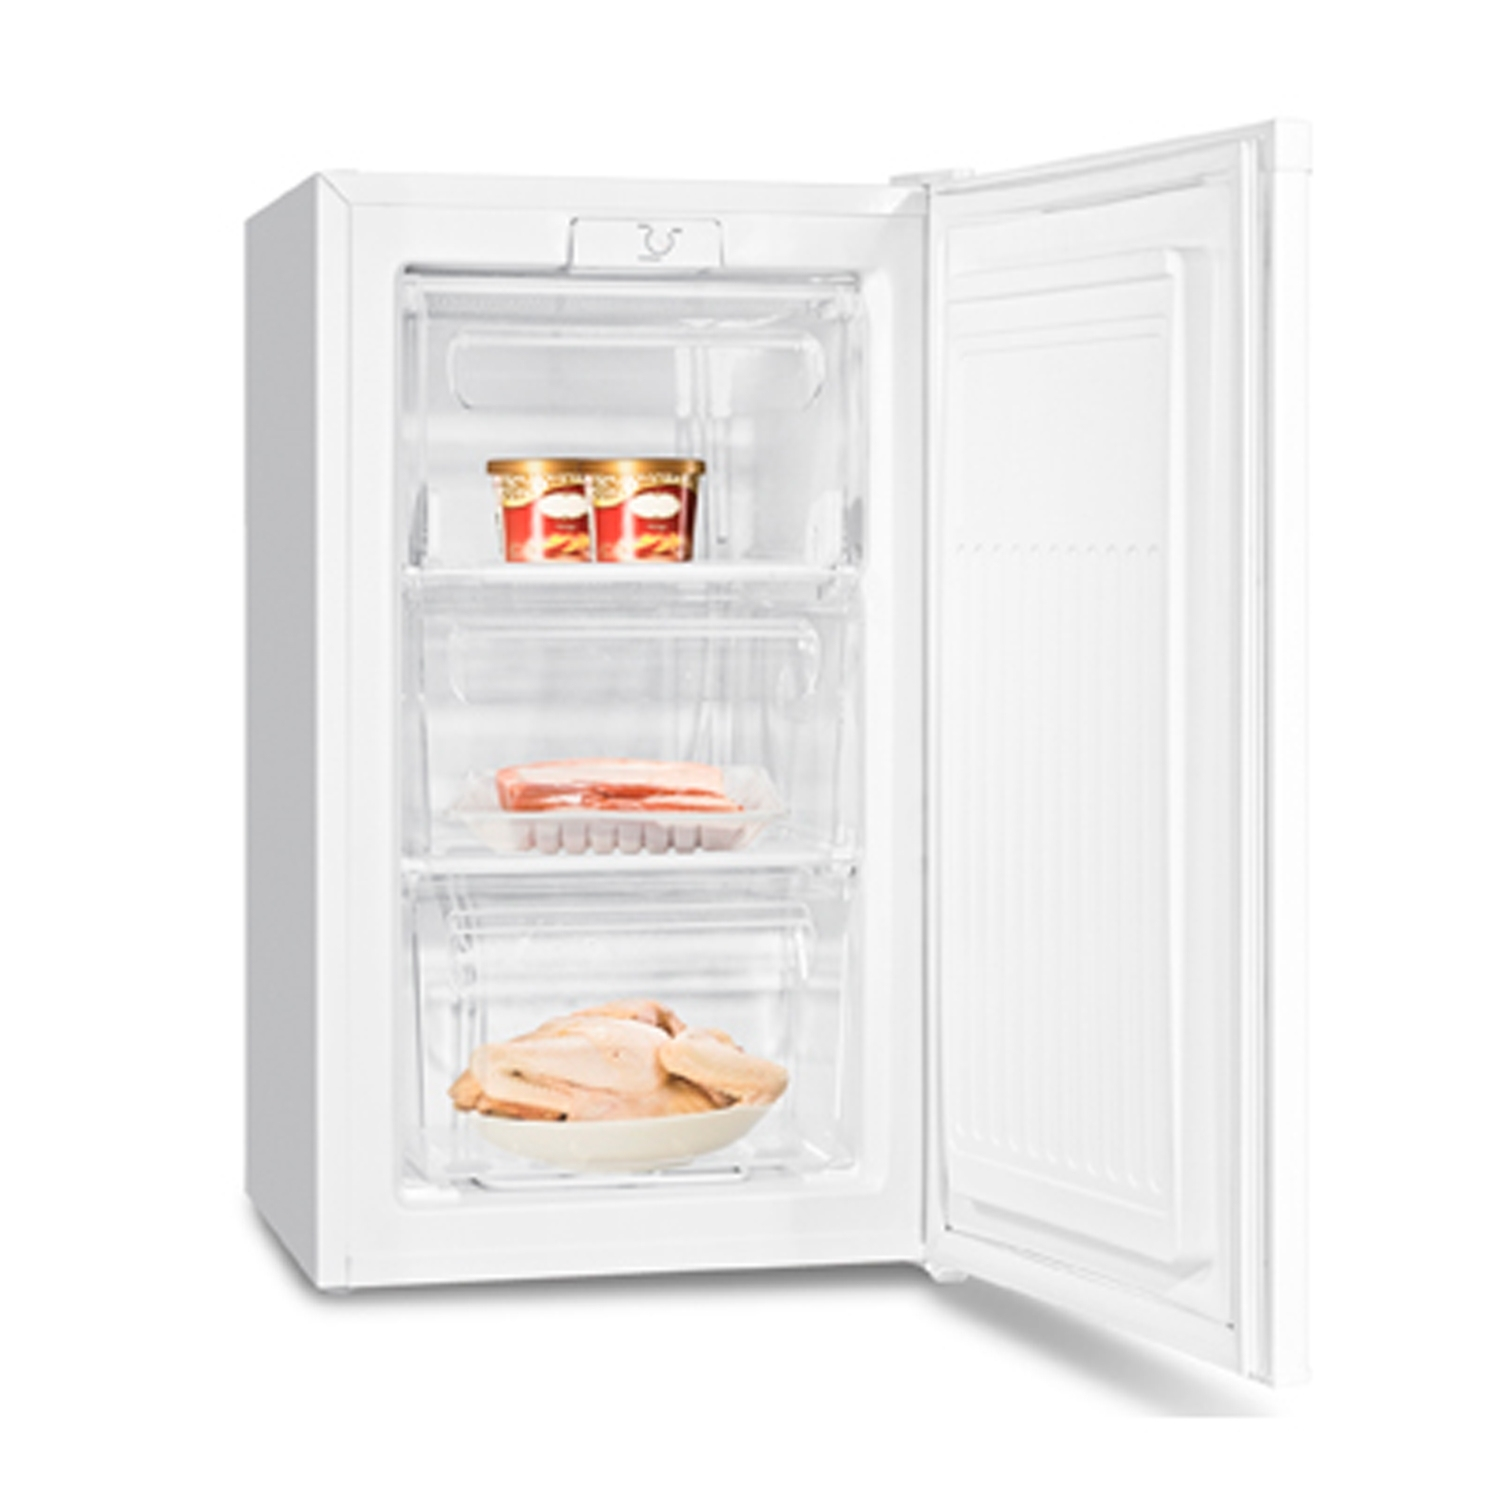 Fridgemaster Undercounter Freezer - 0